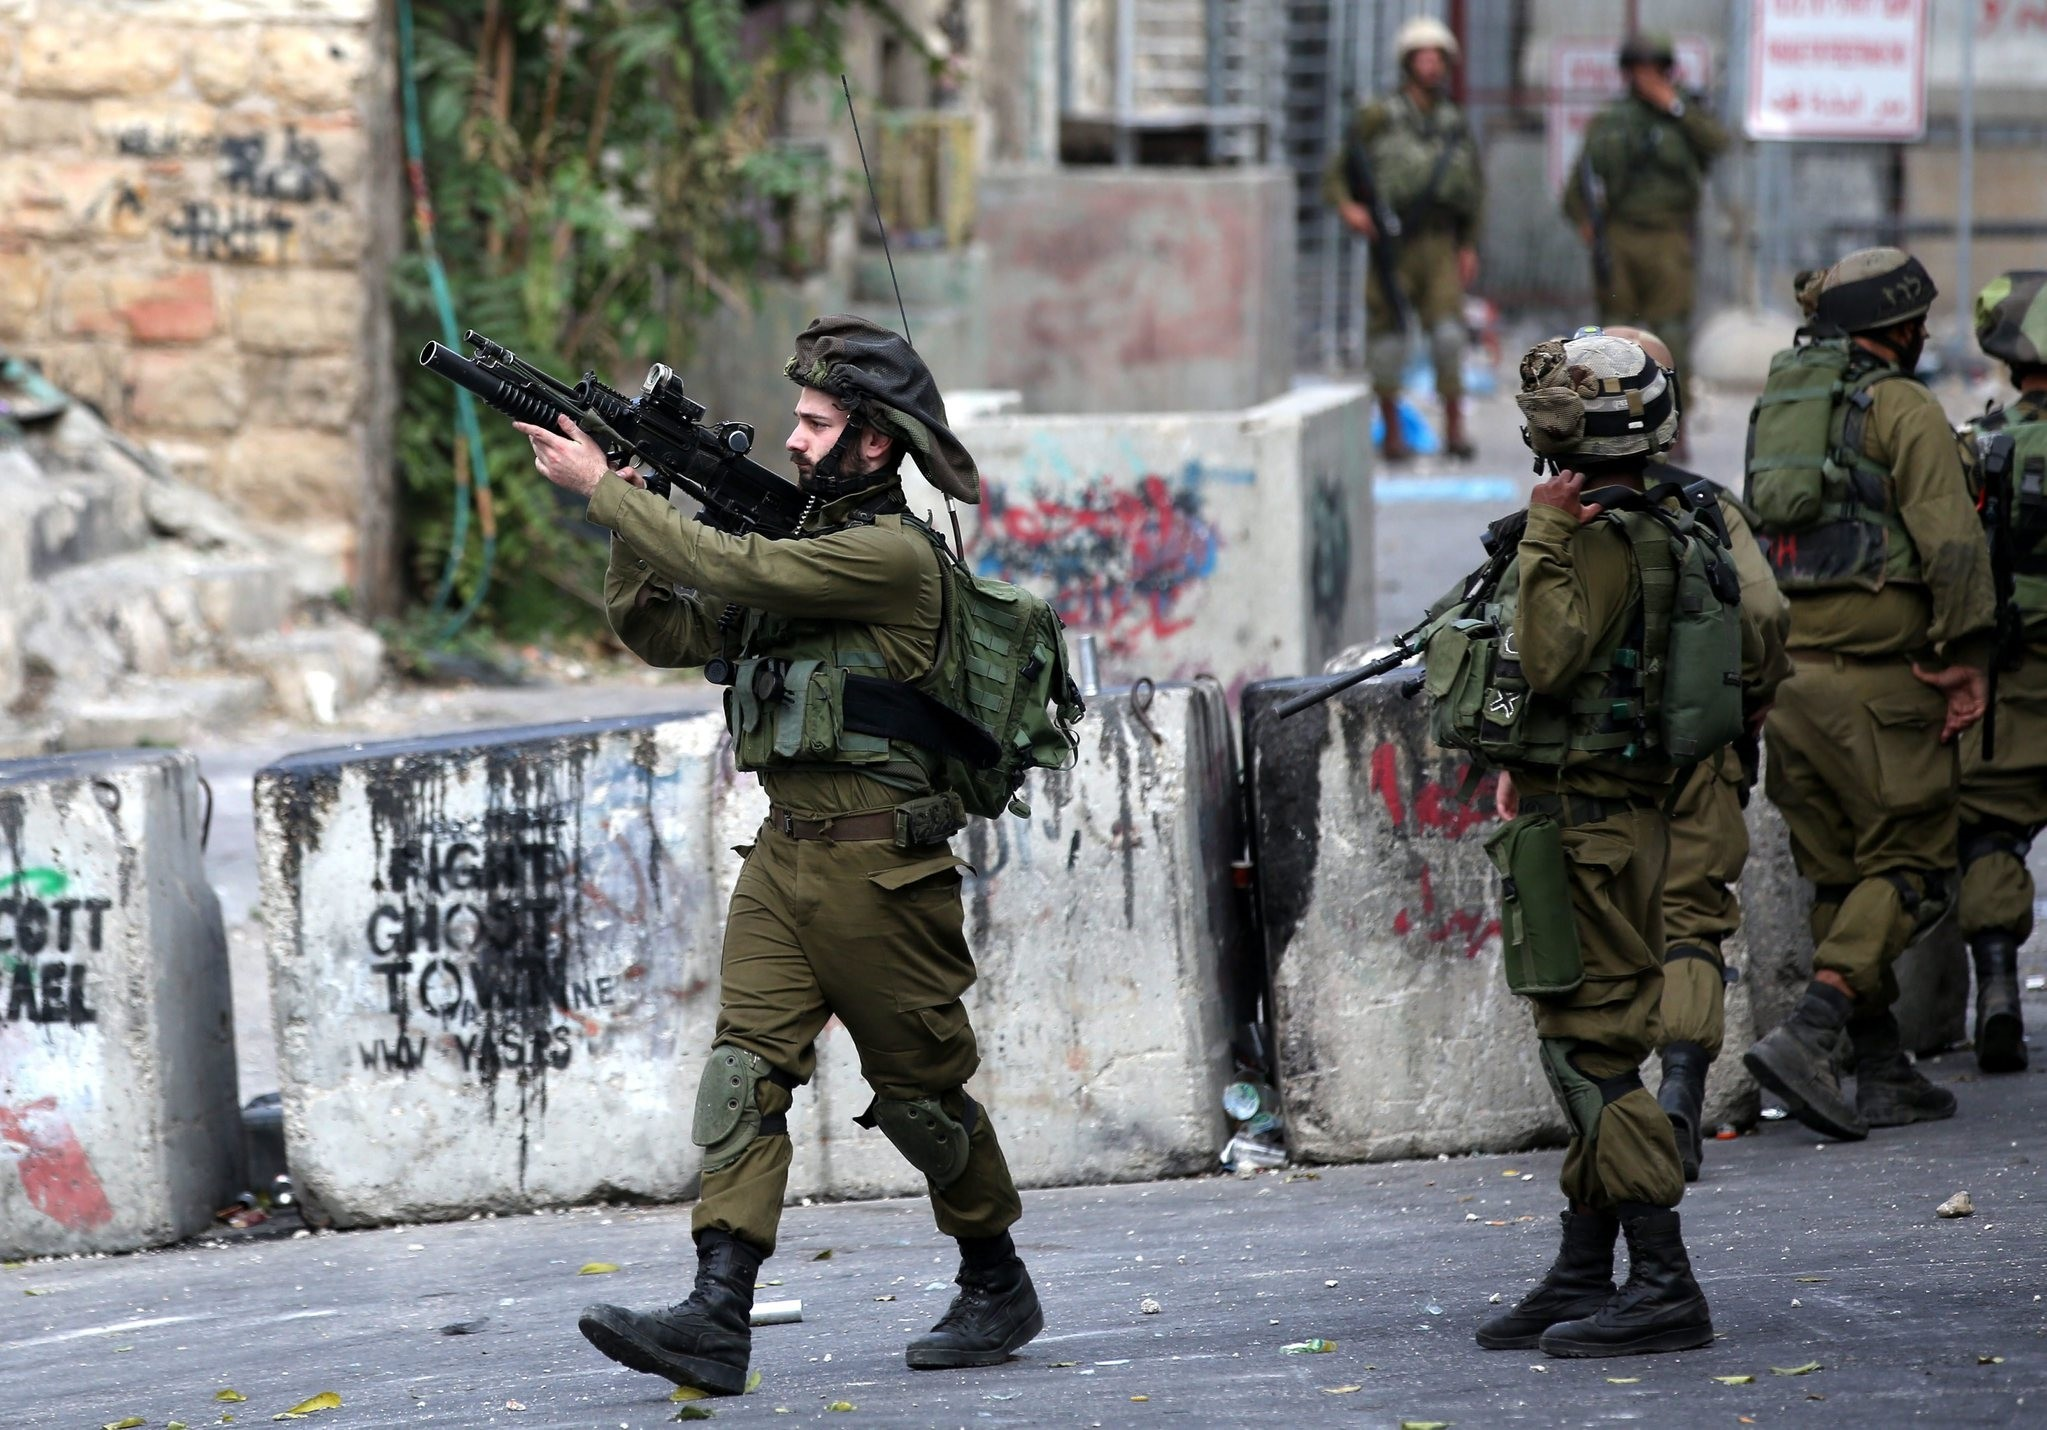 Israeli soldiers take up position during clashes with Palestinian protesters in the West Bank city of Hebron, 19 October 2015. (EPA Photo)